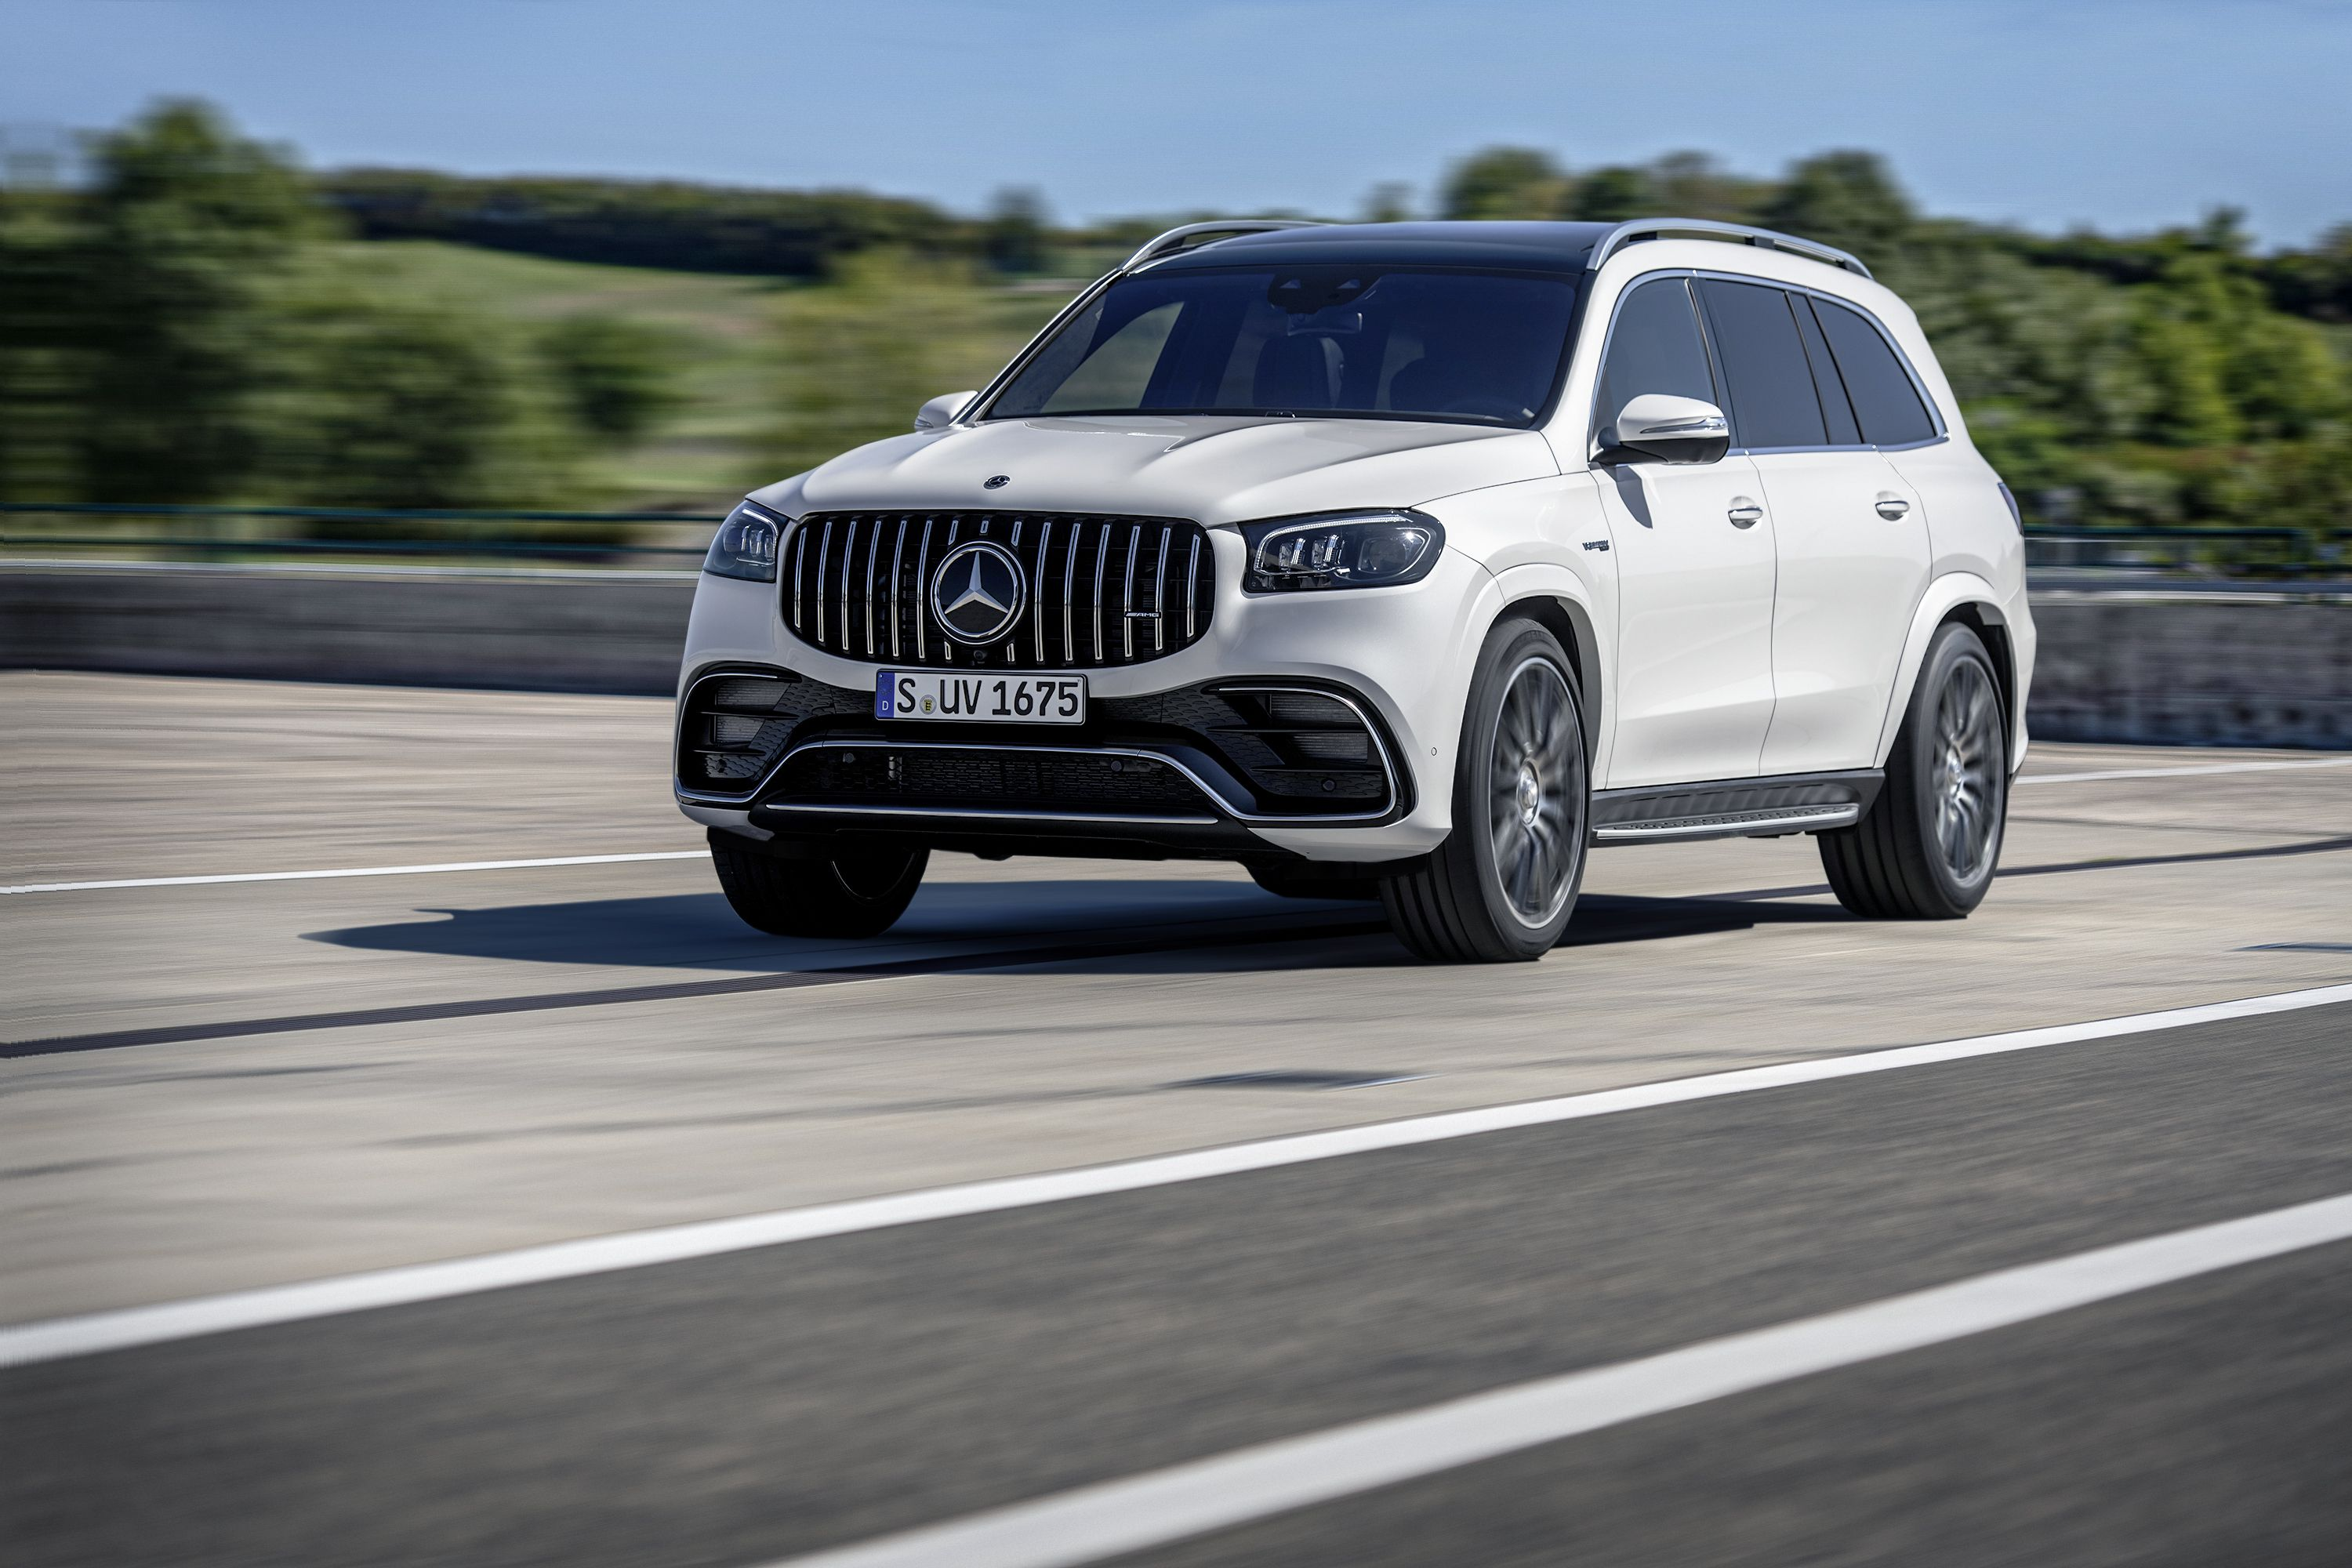 The 2020 Mercedes-AMG GLS 63 S and GLE 63 S Get 603 HP of Twin-Turbo V-8 Power